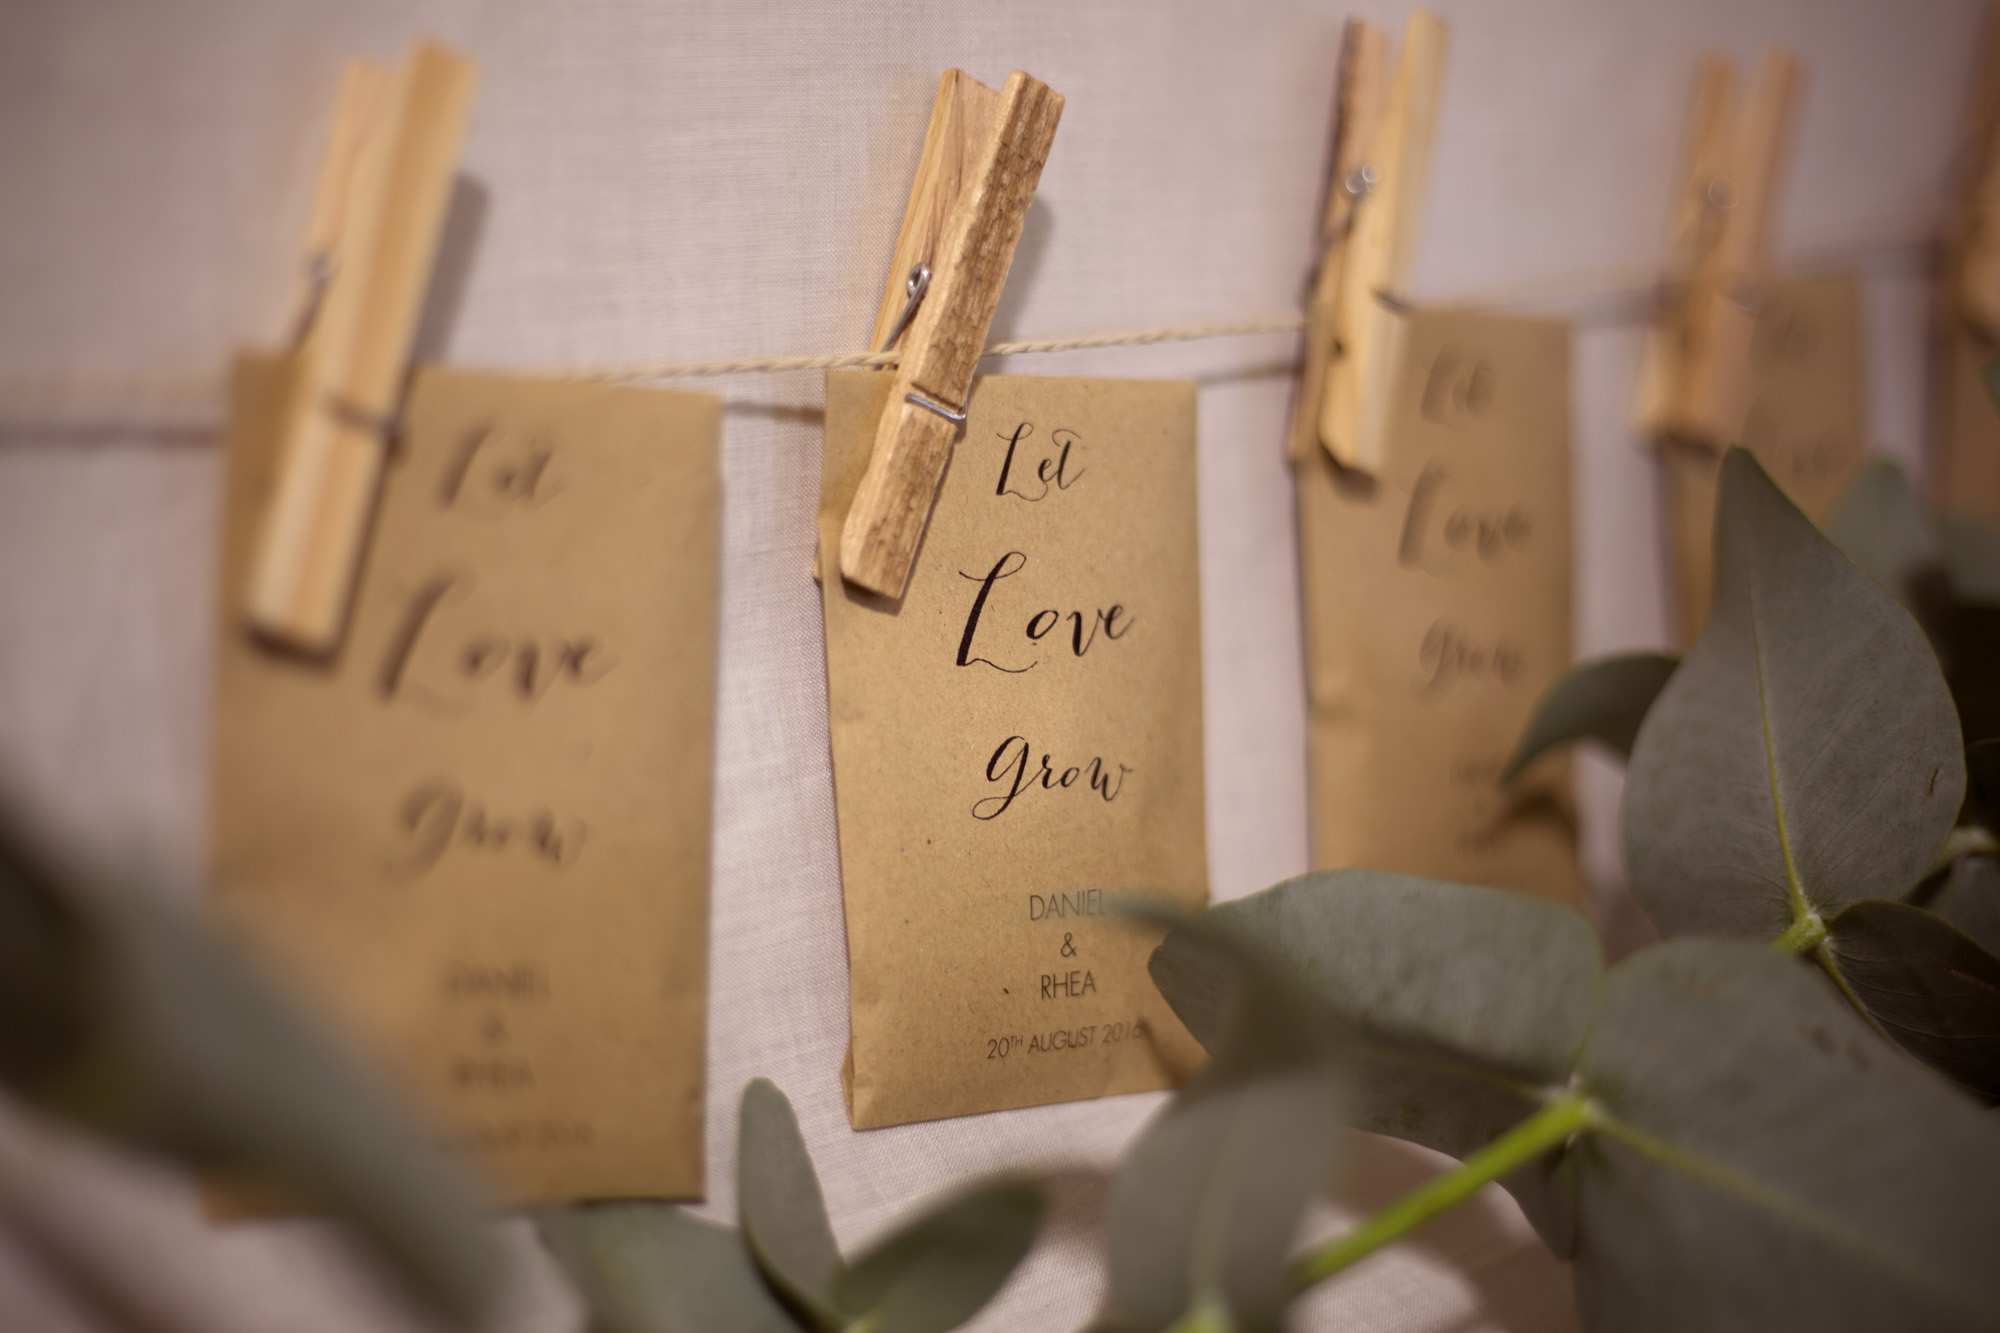 'Let Love grow' seed packets as wedding favours at woodland wedding photographer